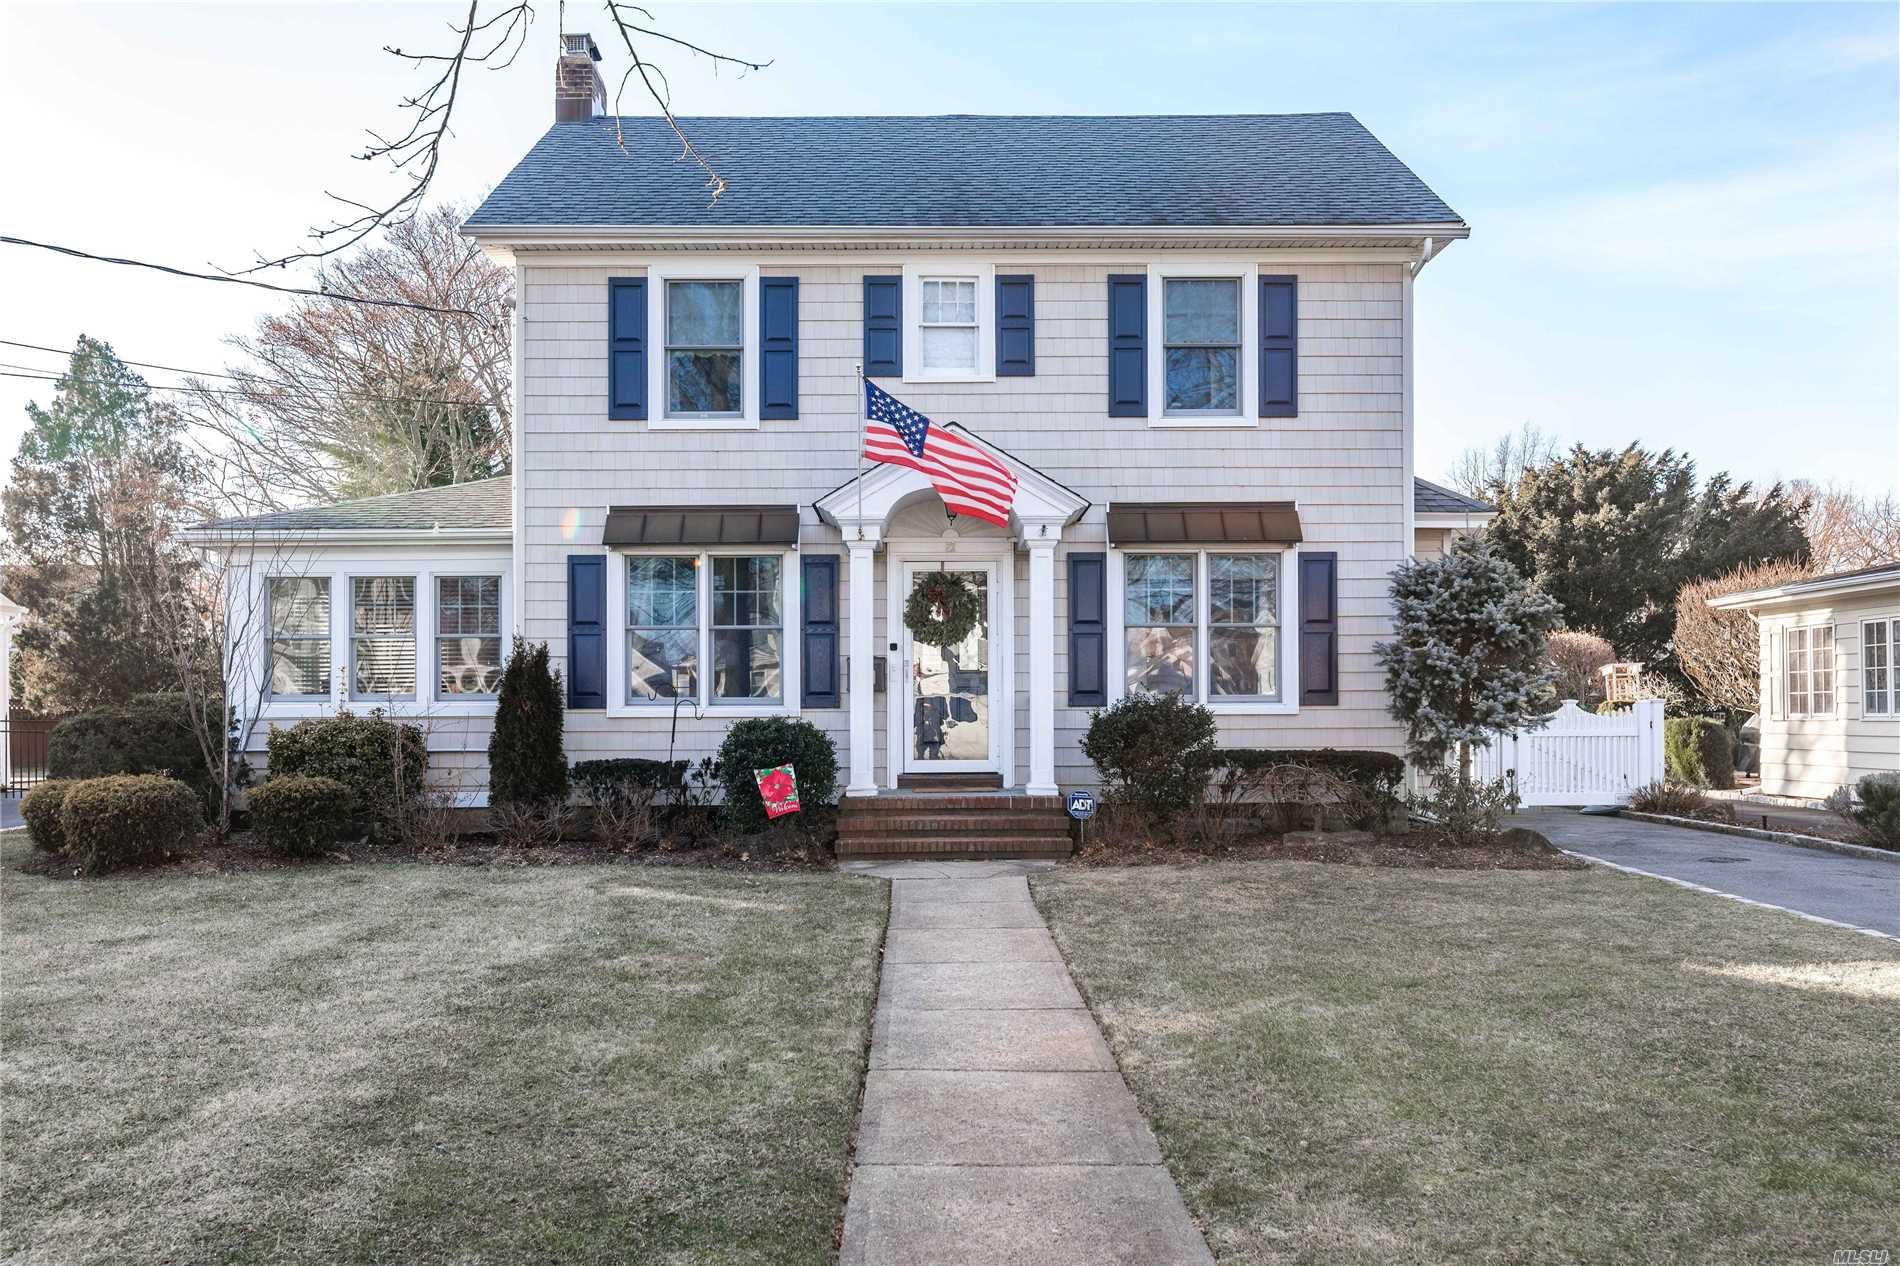 Welcome Home To This 4 Bedroom Colonial In The Heart Of The Village.1st Floor Features Living Room W/ Fireplace, Formal Dr, Large Eat In Kitchen Overlooking The Serene Pool Sized Property, Spacious Great Rm, Office & Full Bath. 2nd Floor Offers Mbr W/ Wic & Bath, And 3 Additional Bedrooms, Fb & 2nd Fl. Laundry Rm. A Huge Full Finished Basement Completes This Home